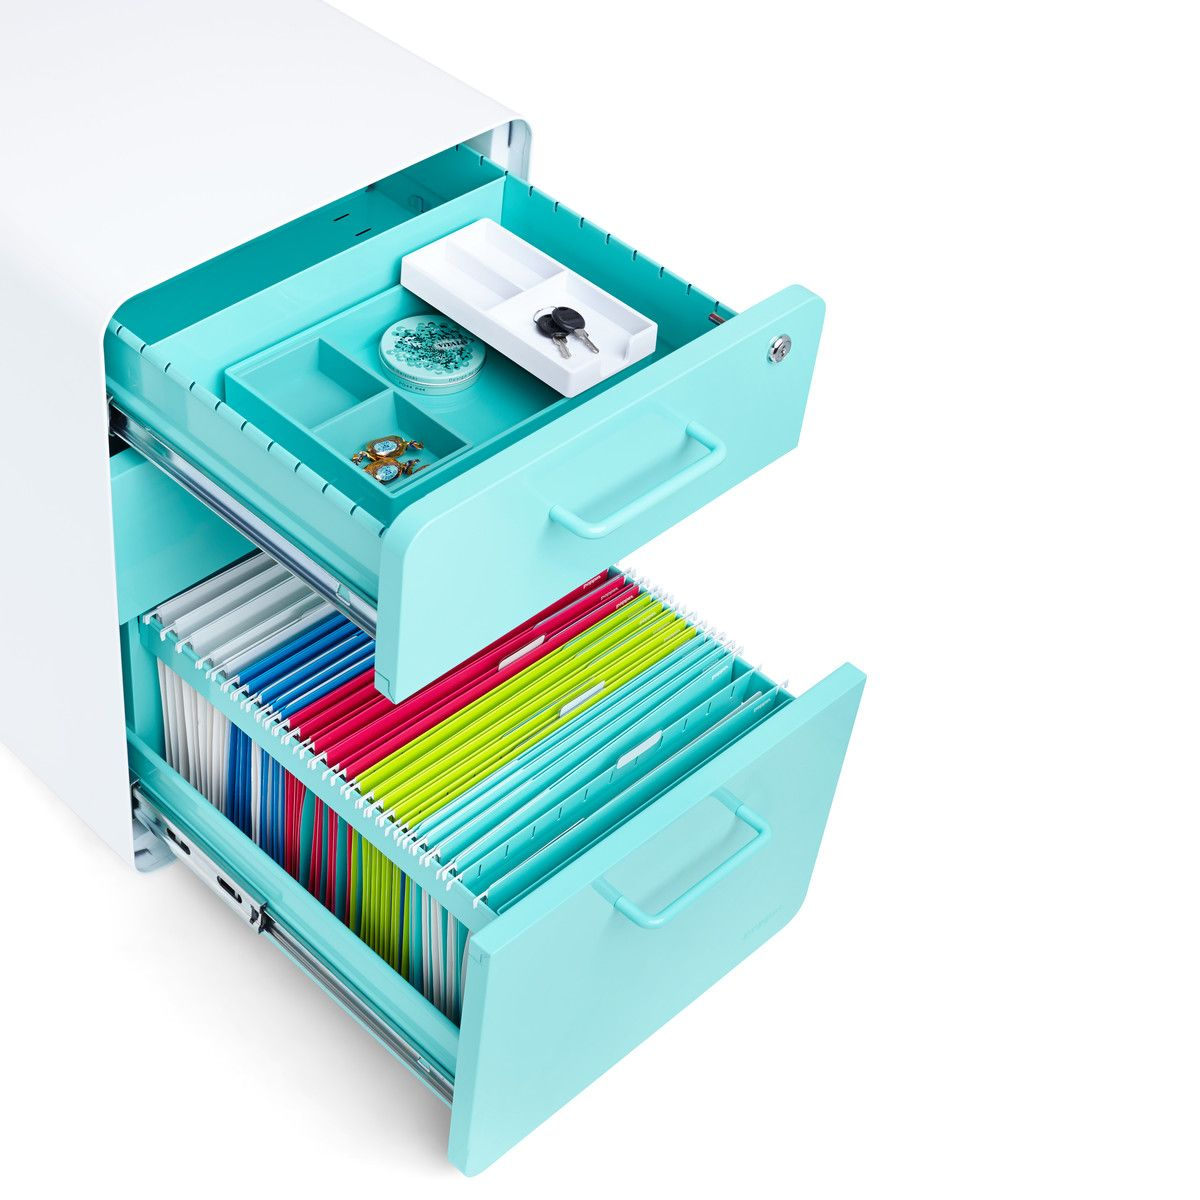 modern office desk accessories. poppin aqua stow 3 drawer file cabinet modern desk accessories cool office supplies and